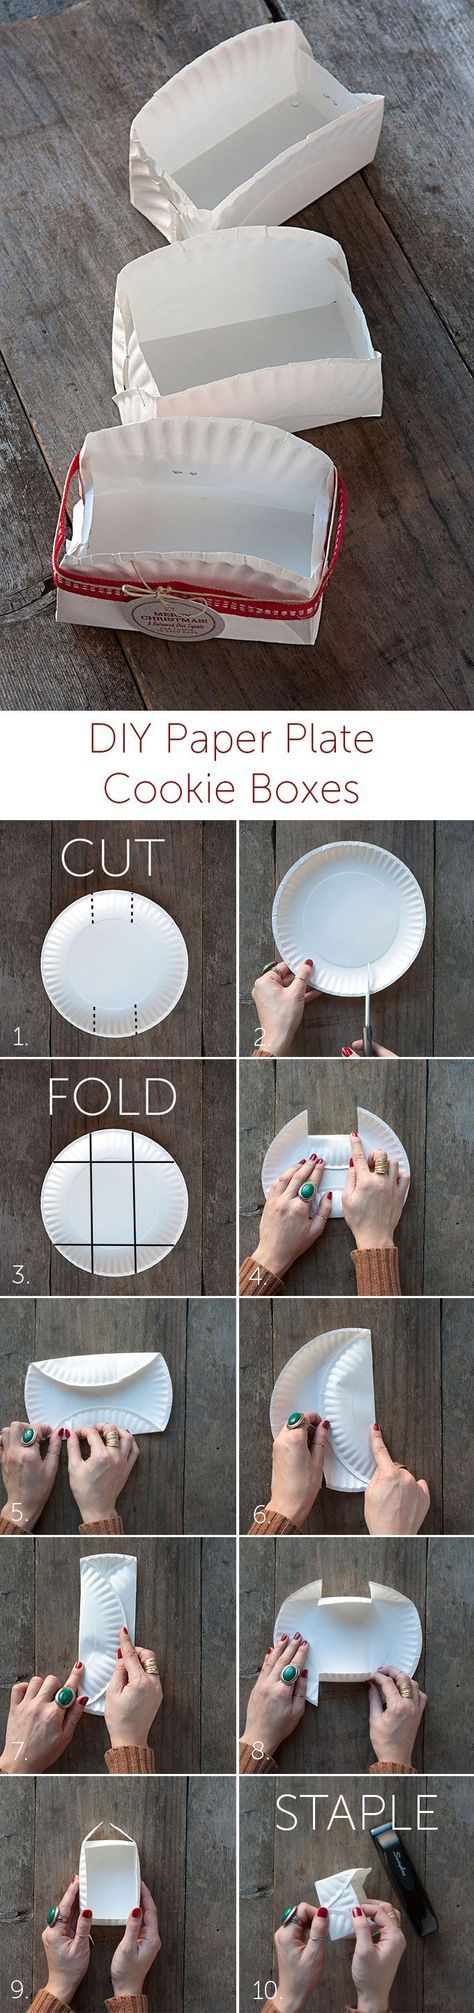 Holiday DIY: Paper Plate Cookie Boxes